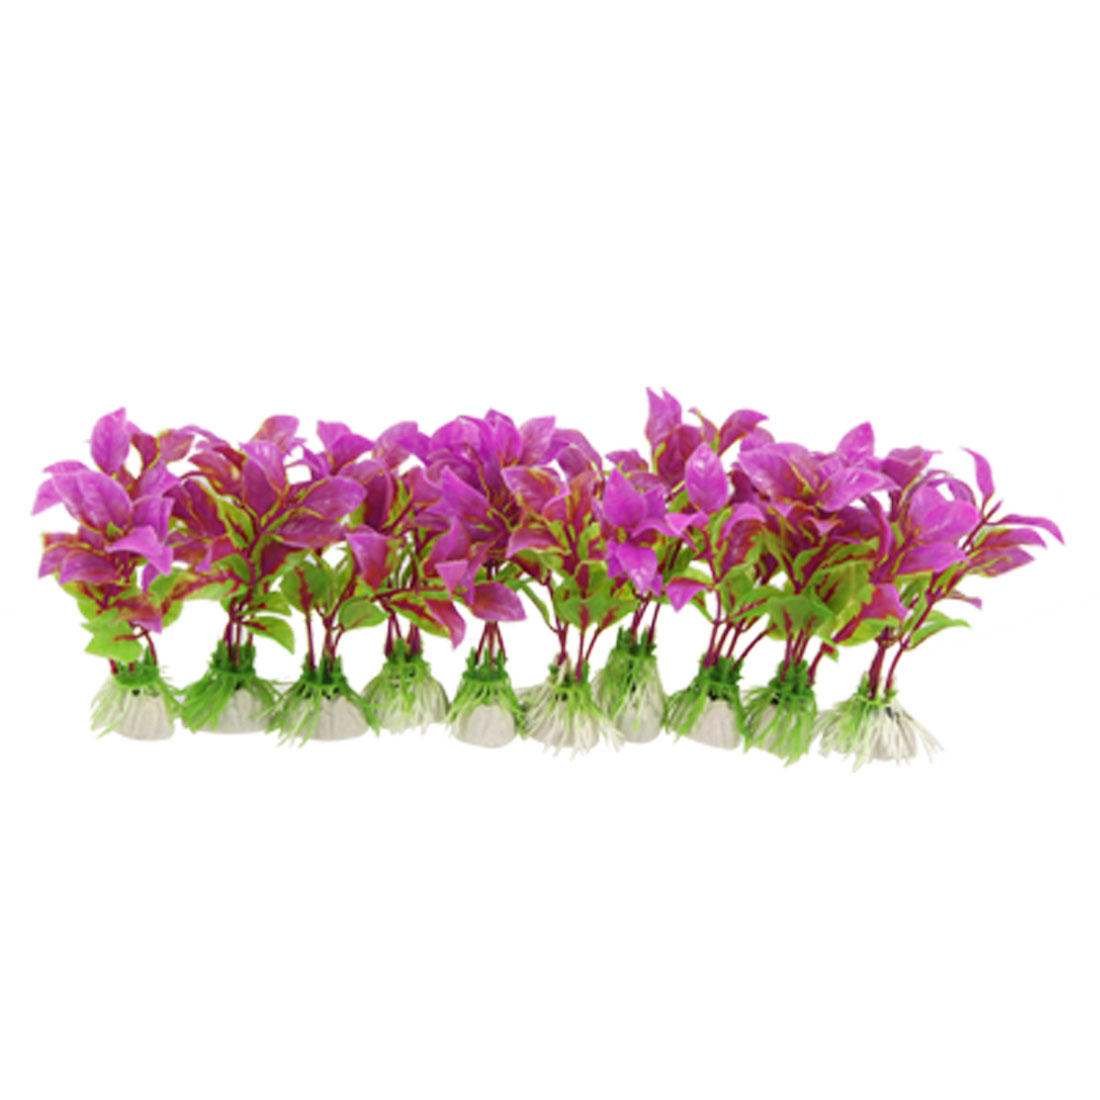 11cm Fuchsia Plastic Egg Shaped Leaf Plant Ornament for Aquarium